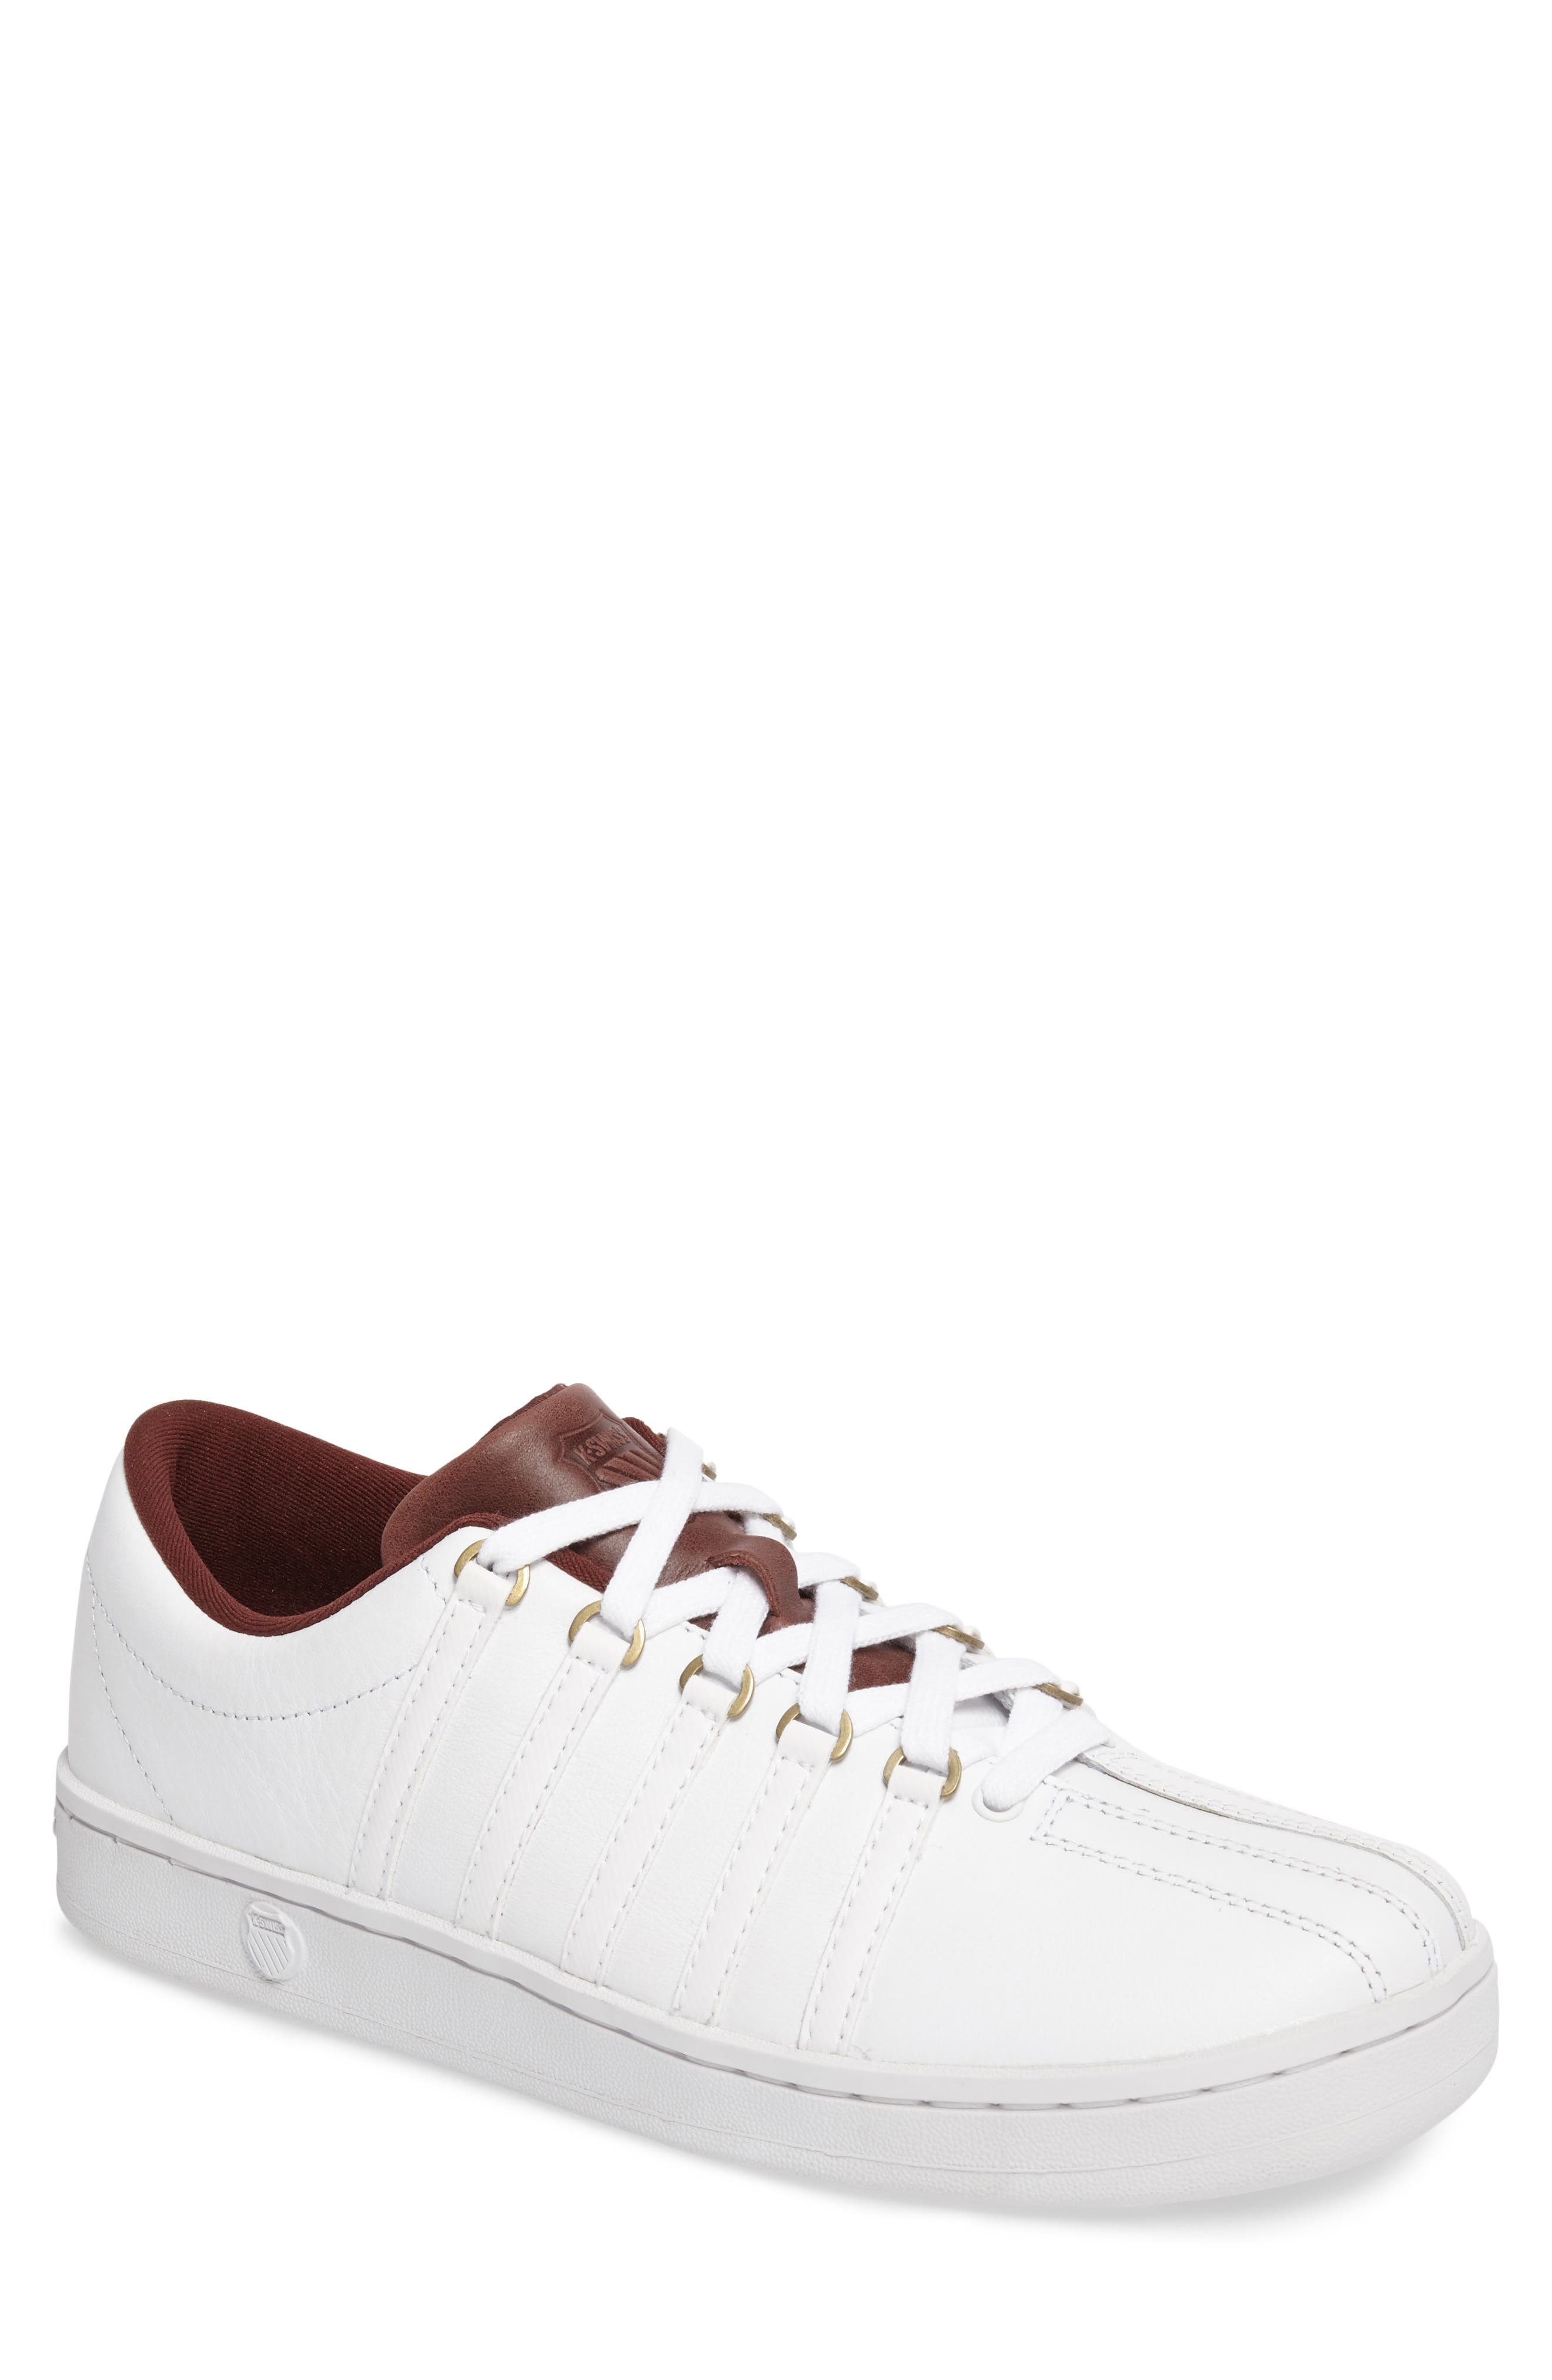 'The Classic' Sneaker,                         Main,                         color, 198